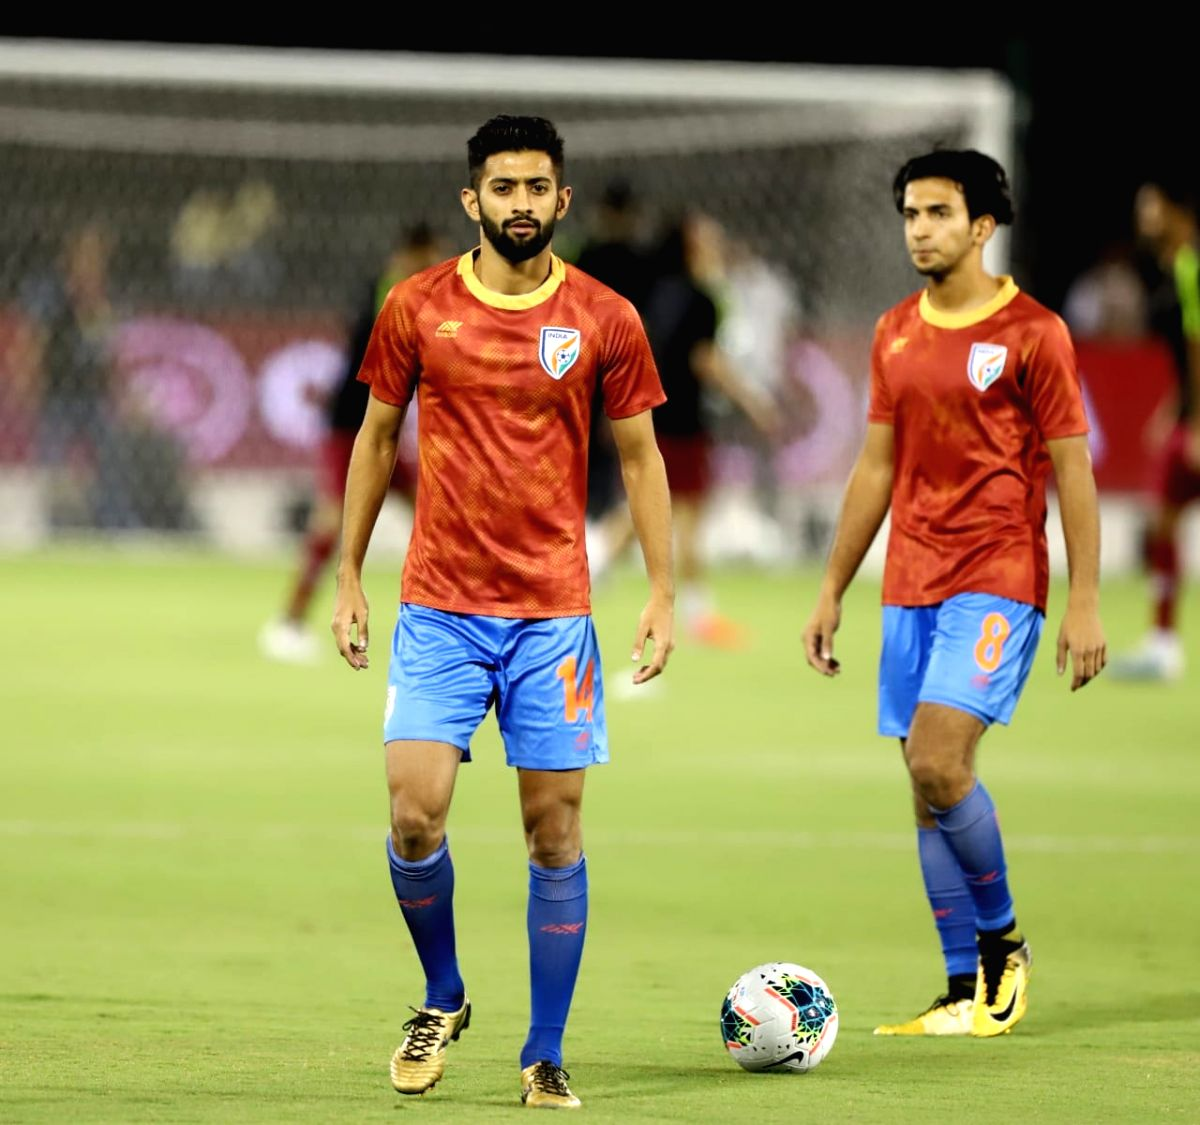 ISL has given structure to Indian football: Hyderabad FC's Poojary.